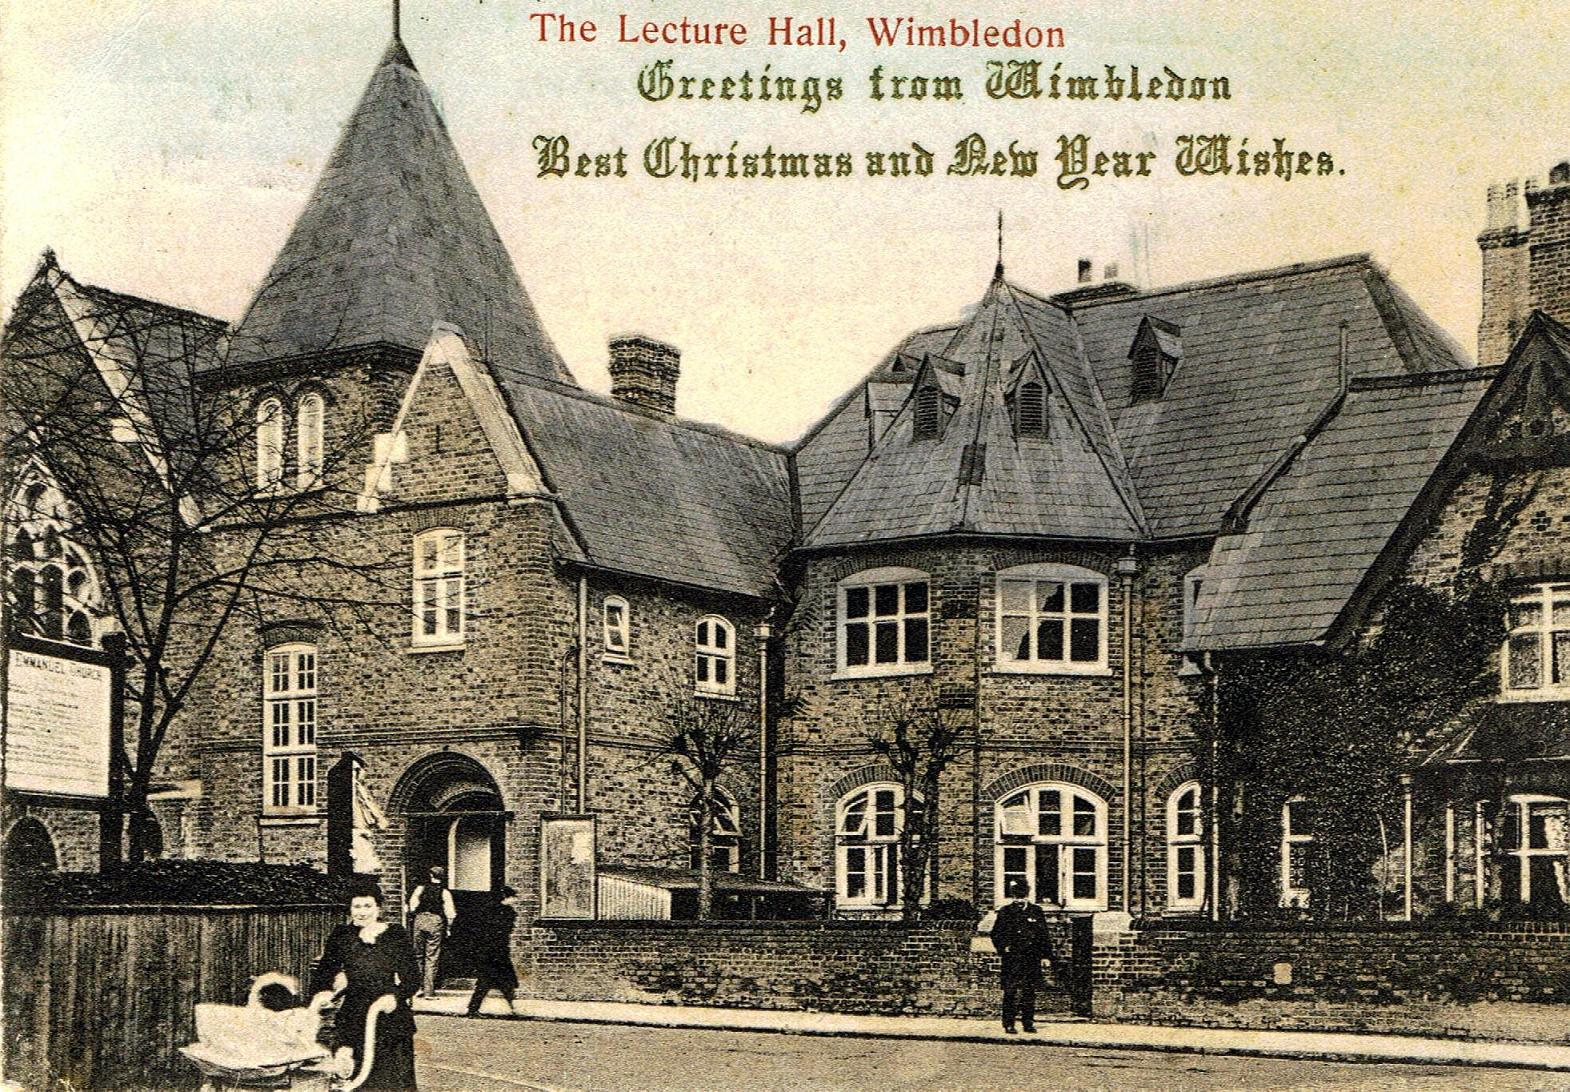 The Museum of Wimbledon produces Christmas cards every year, now of course in glorious colour rather than sepia